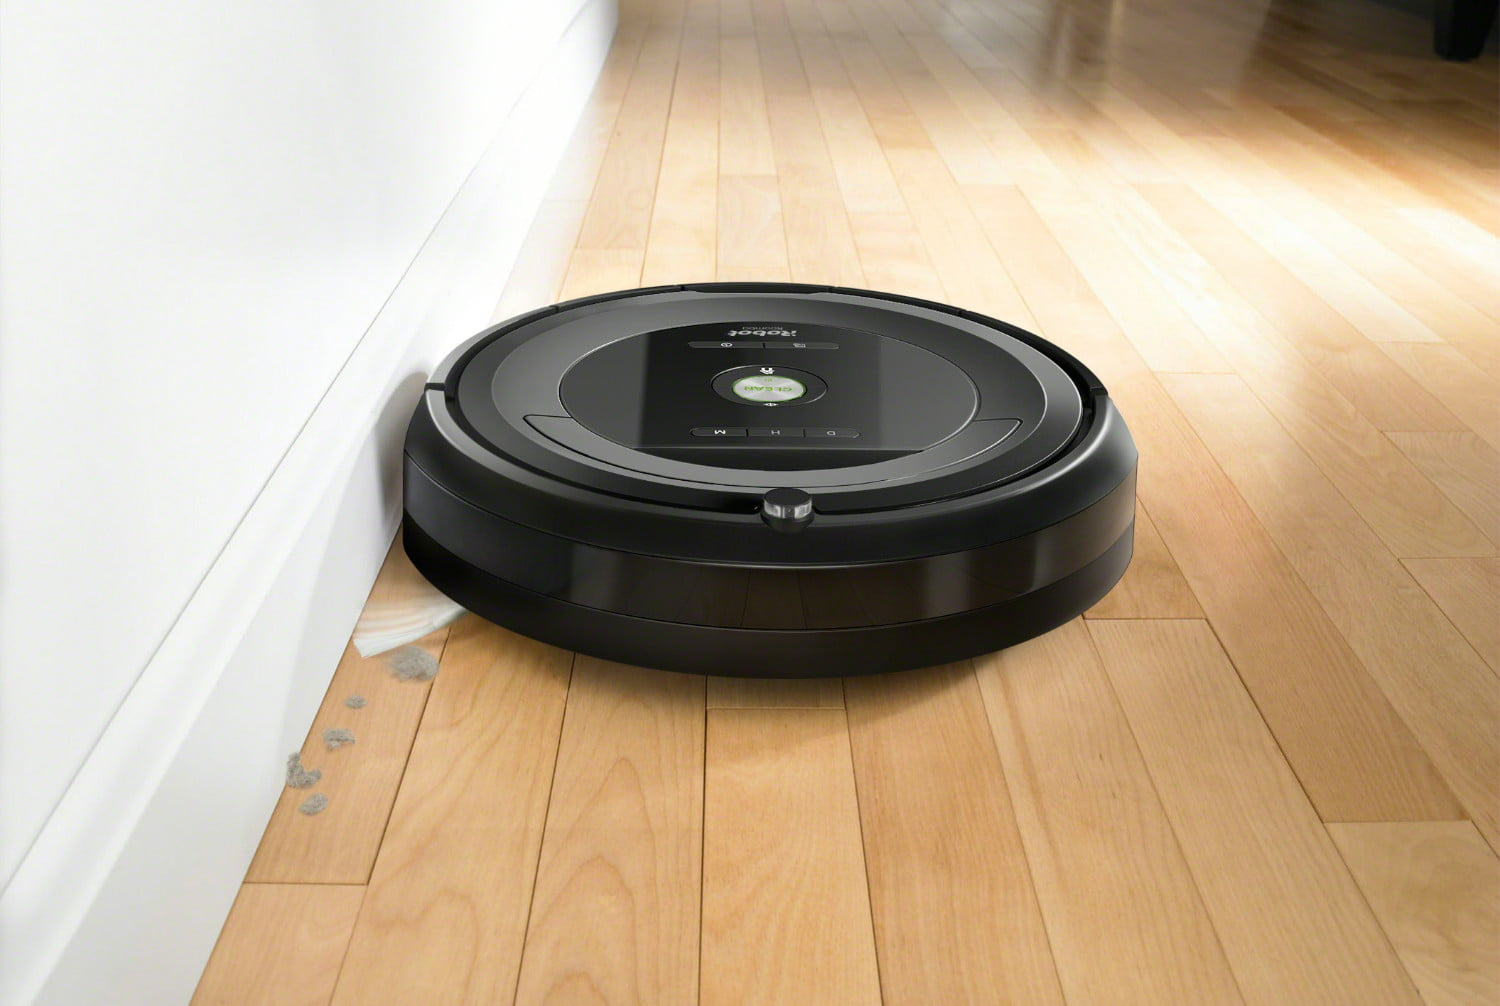 Roomba And Shark Ion Robot Vacuums Get Price Cuts For